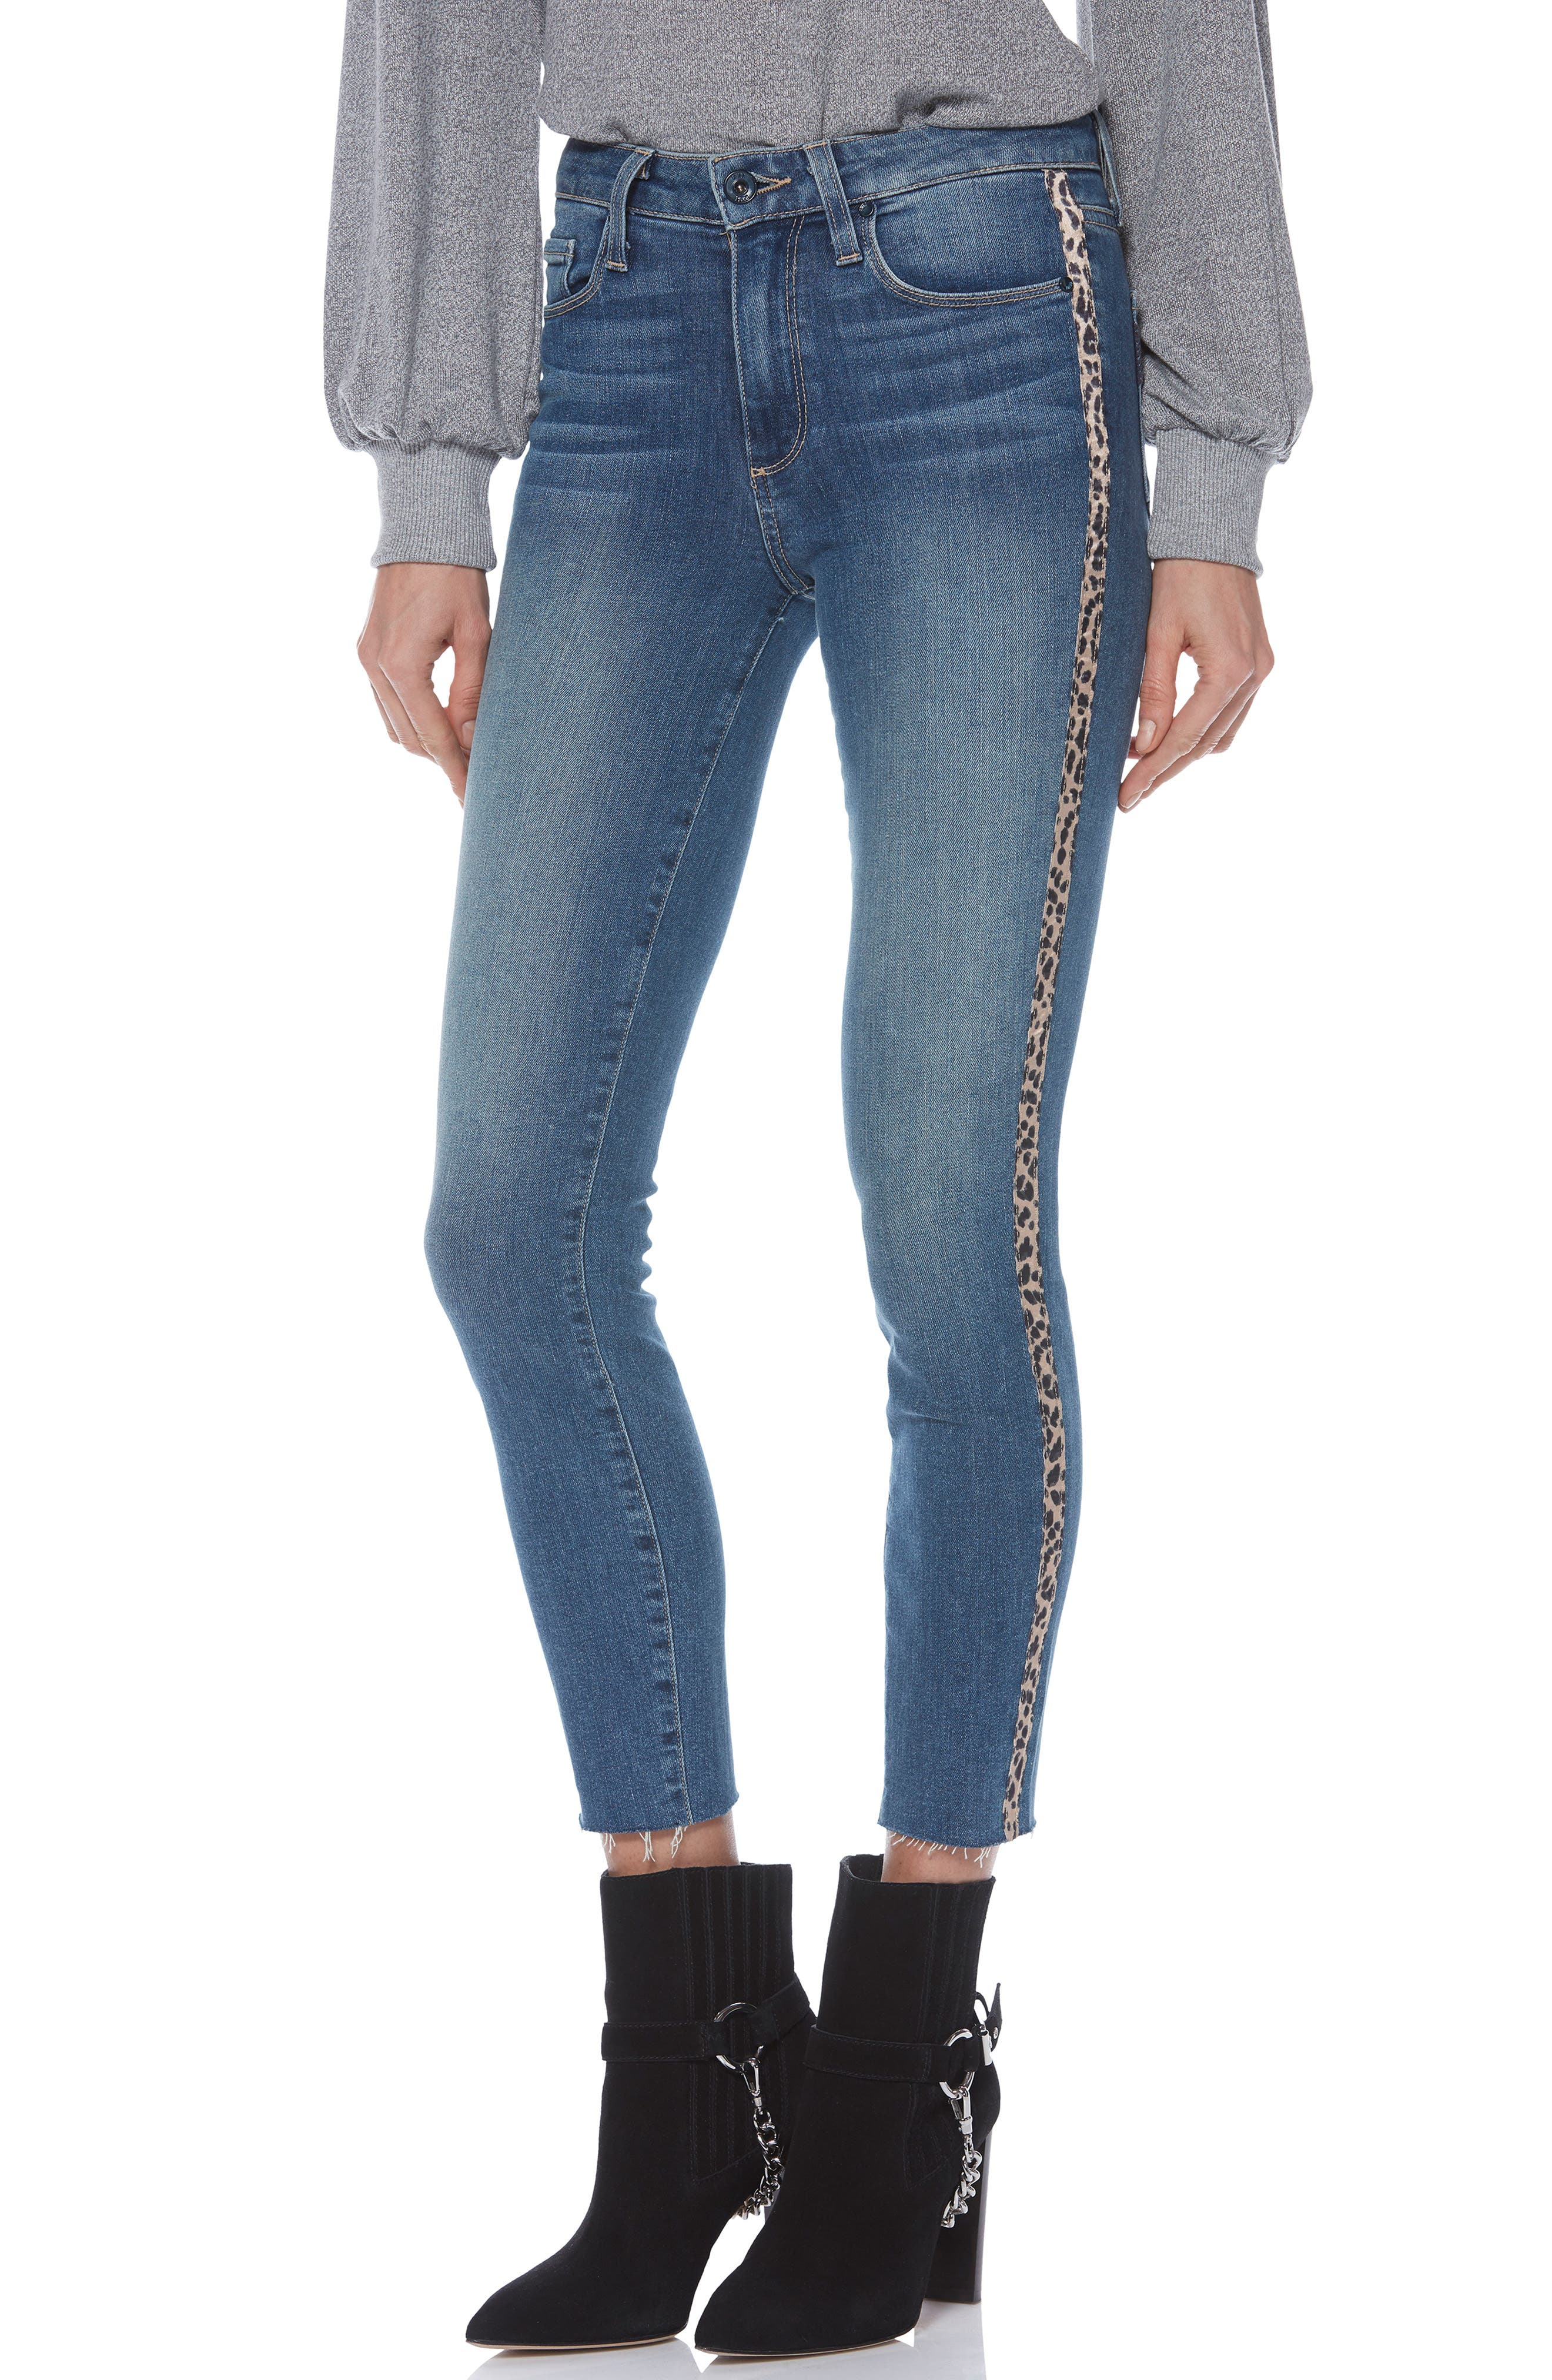 PAIGE Hoxton High Waist Raw Hem Crop Skinny Jeans, Main, color, BARKLEY W/ LEOPARD